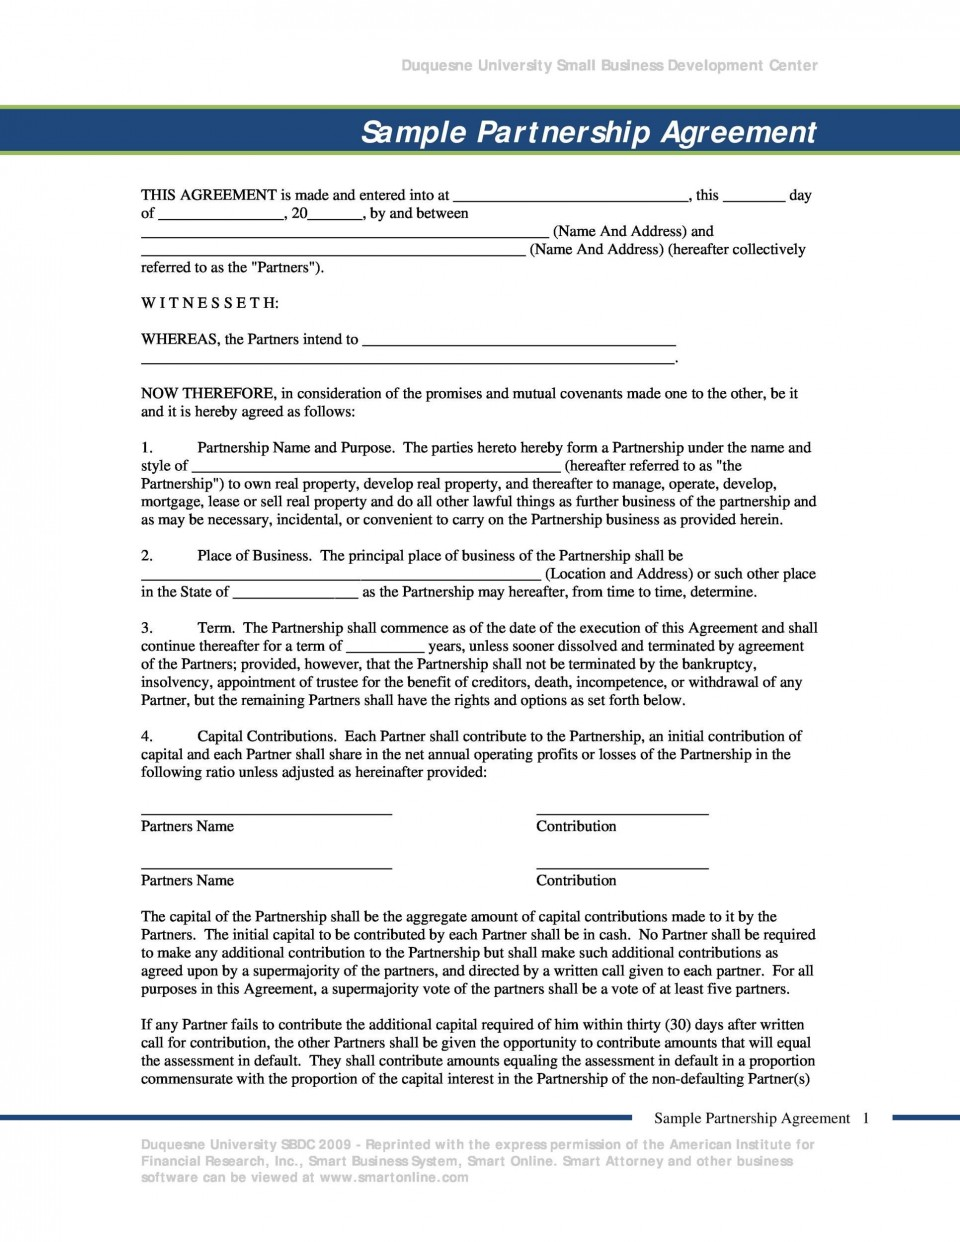 009 Outstanding Busines Partnership Contract Template Sample  Agreement Free Nz Word960